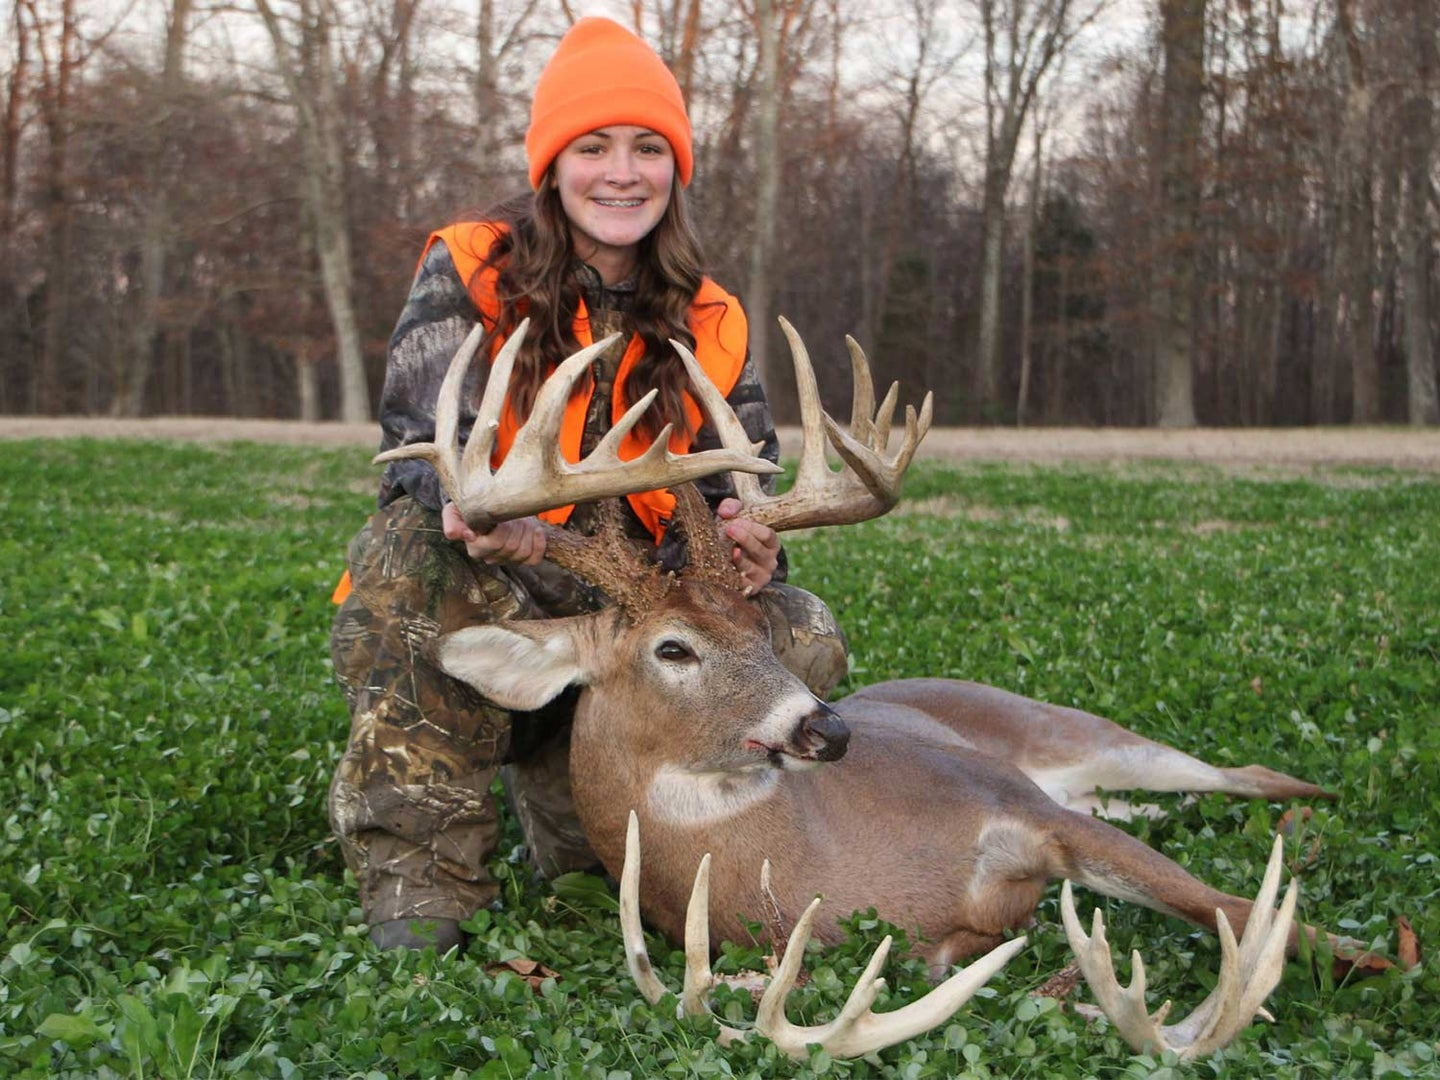 A young girl poses with a whitetail deer and holds its head by its antlers.